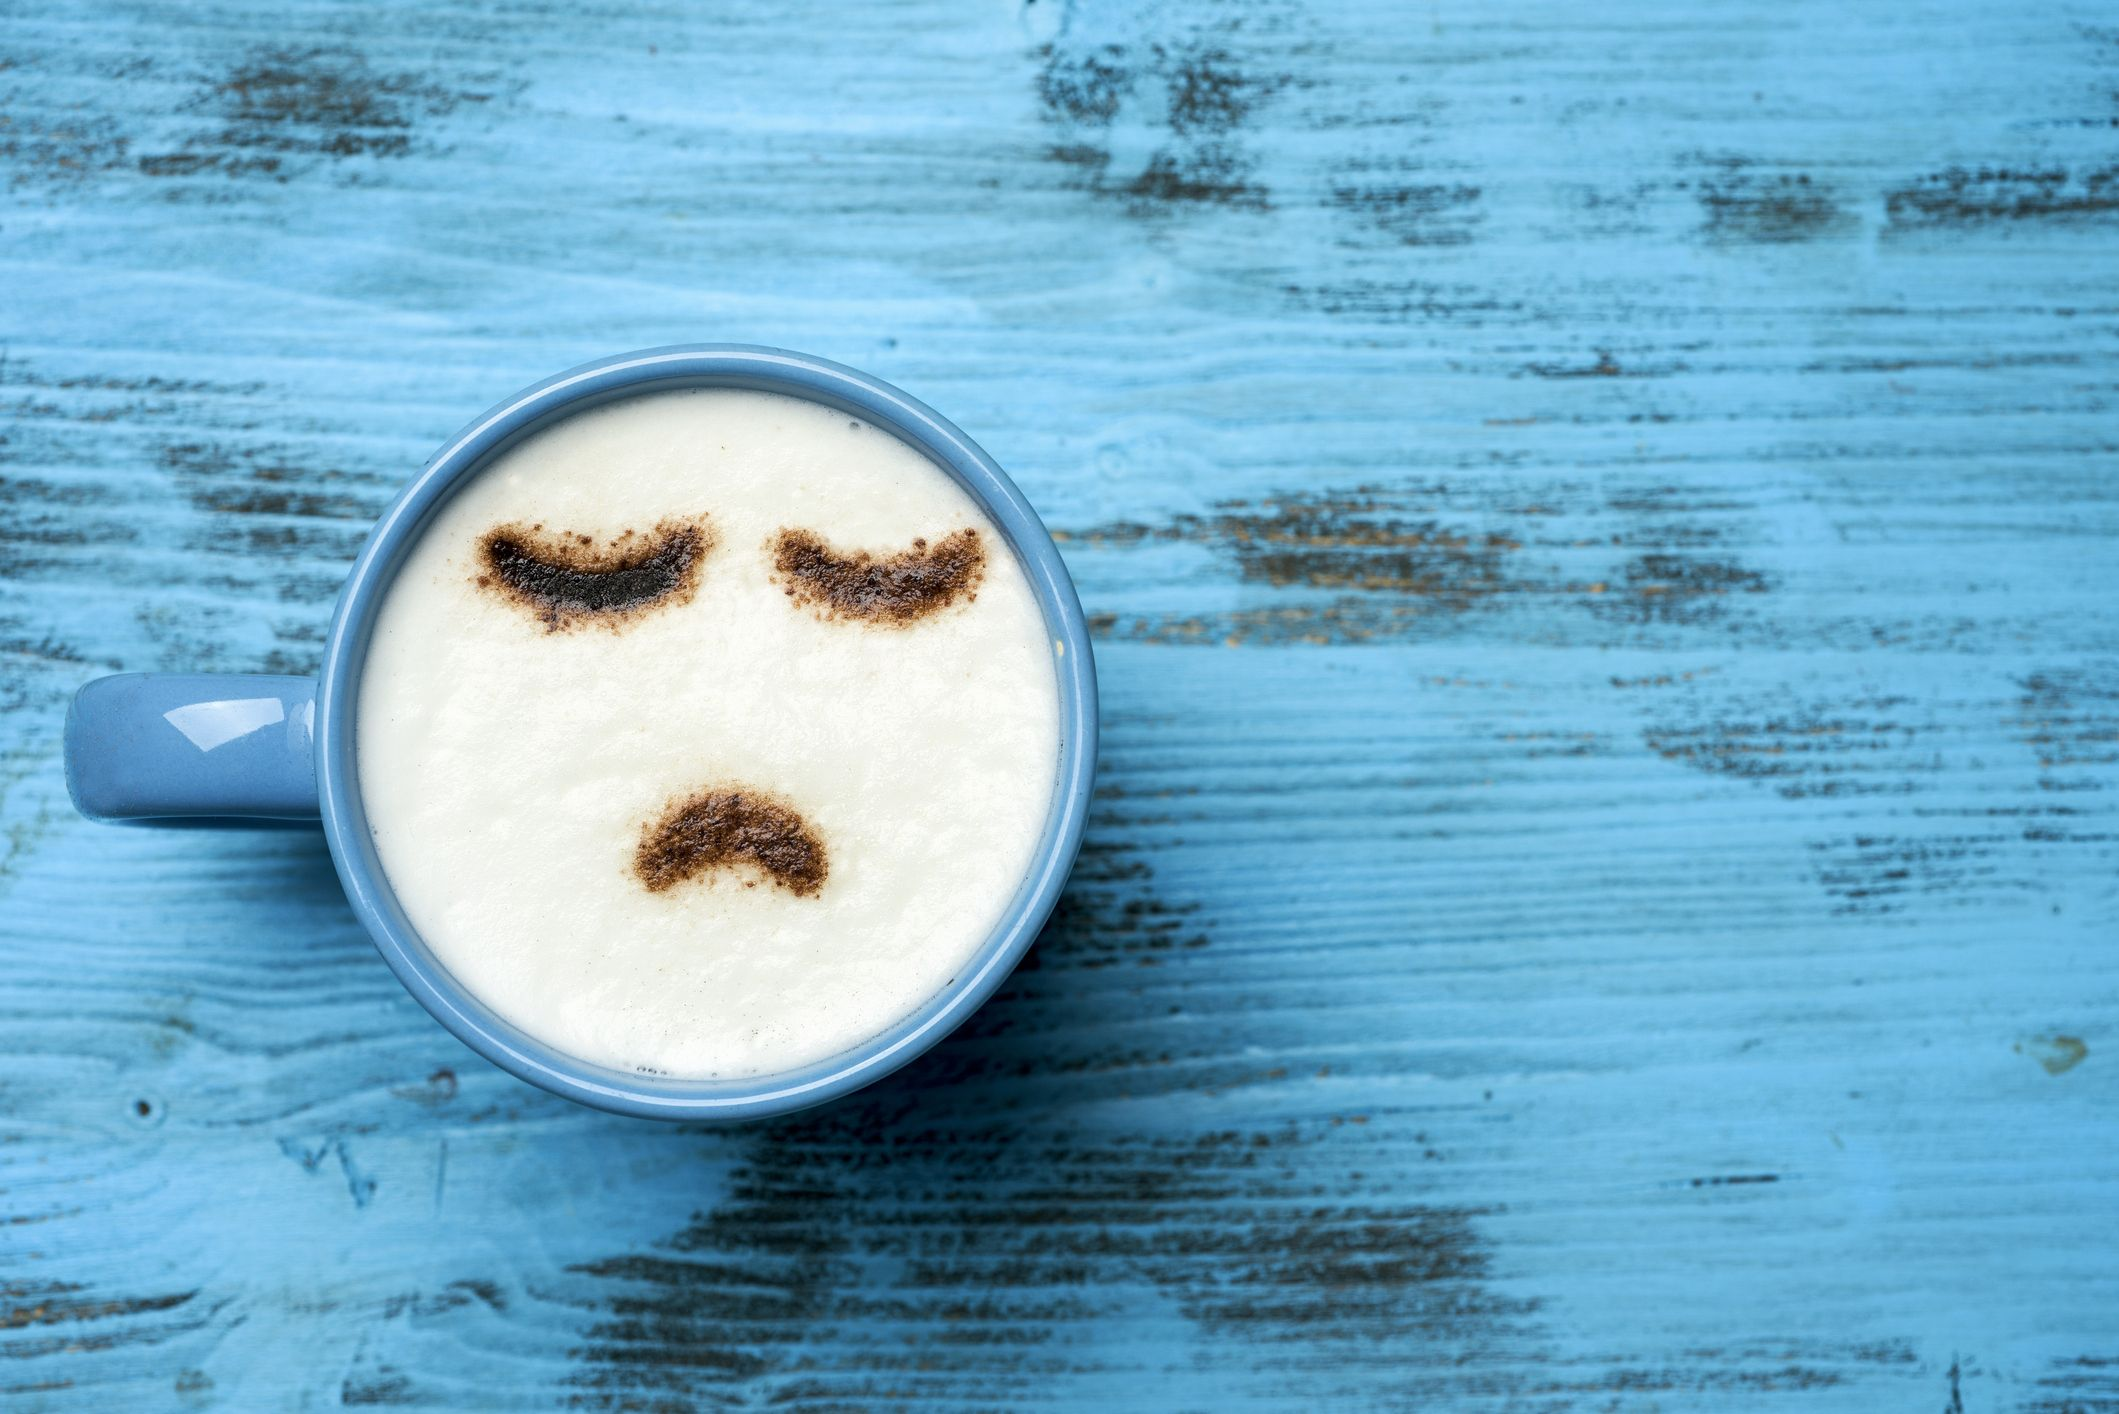 Anxiety In The Morning? Why It Happens And What To Do About It, According To A Mental Health Pro